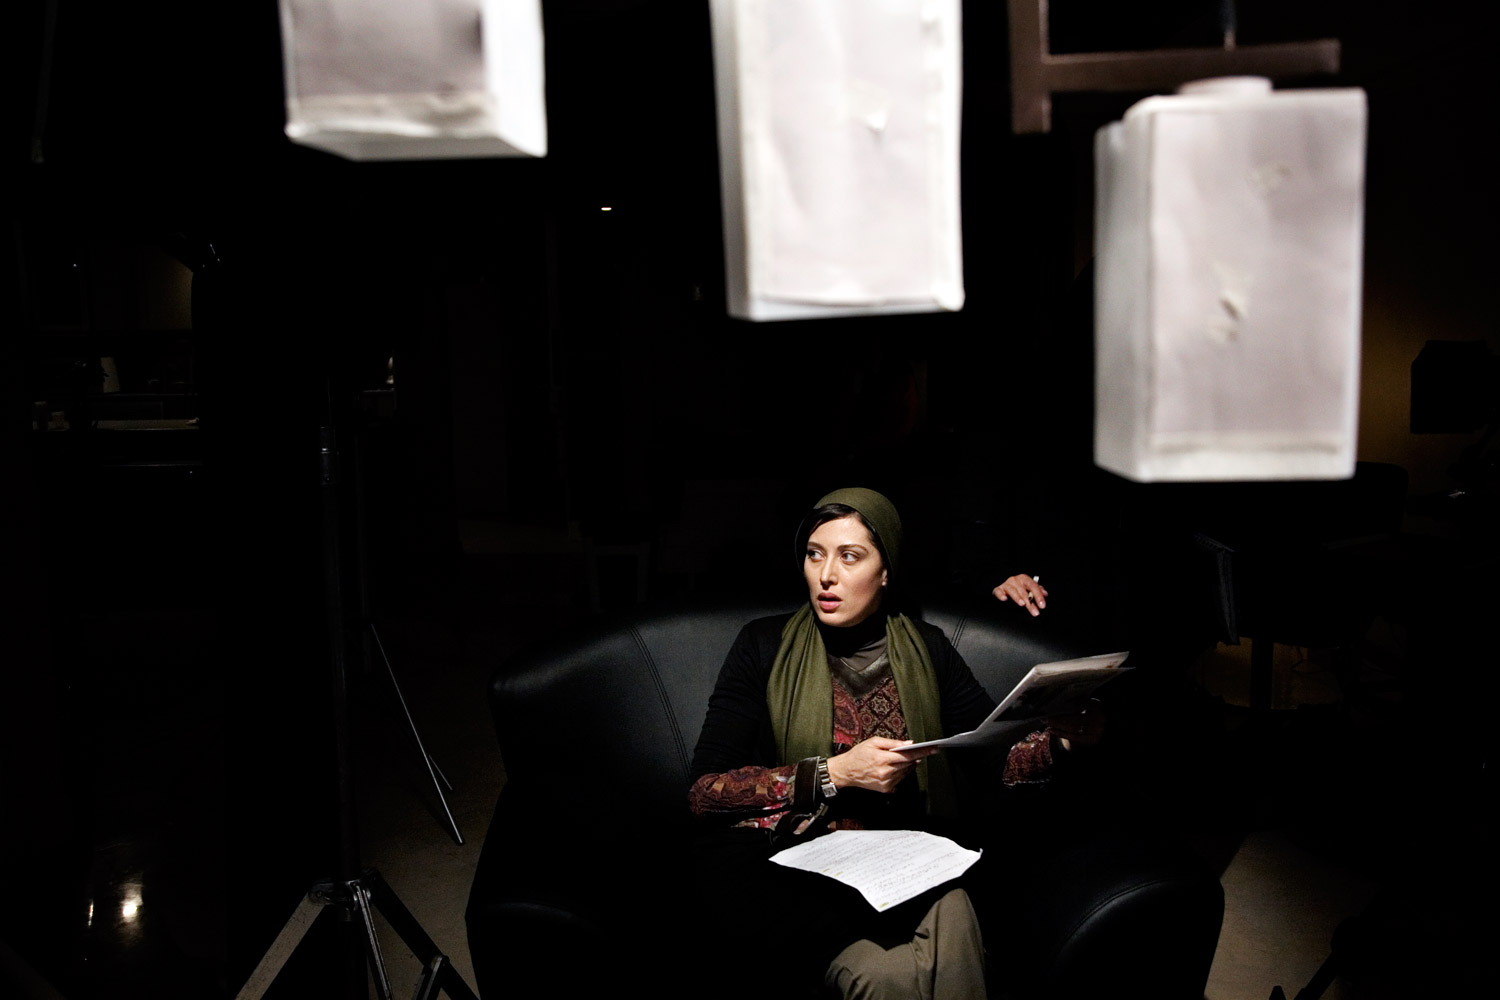 Actress Mahtab Karamati prepares for a scene on the set of director Rusagh Karimi's film The Hidden Meaning in Tehran.